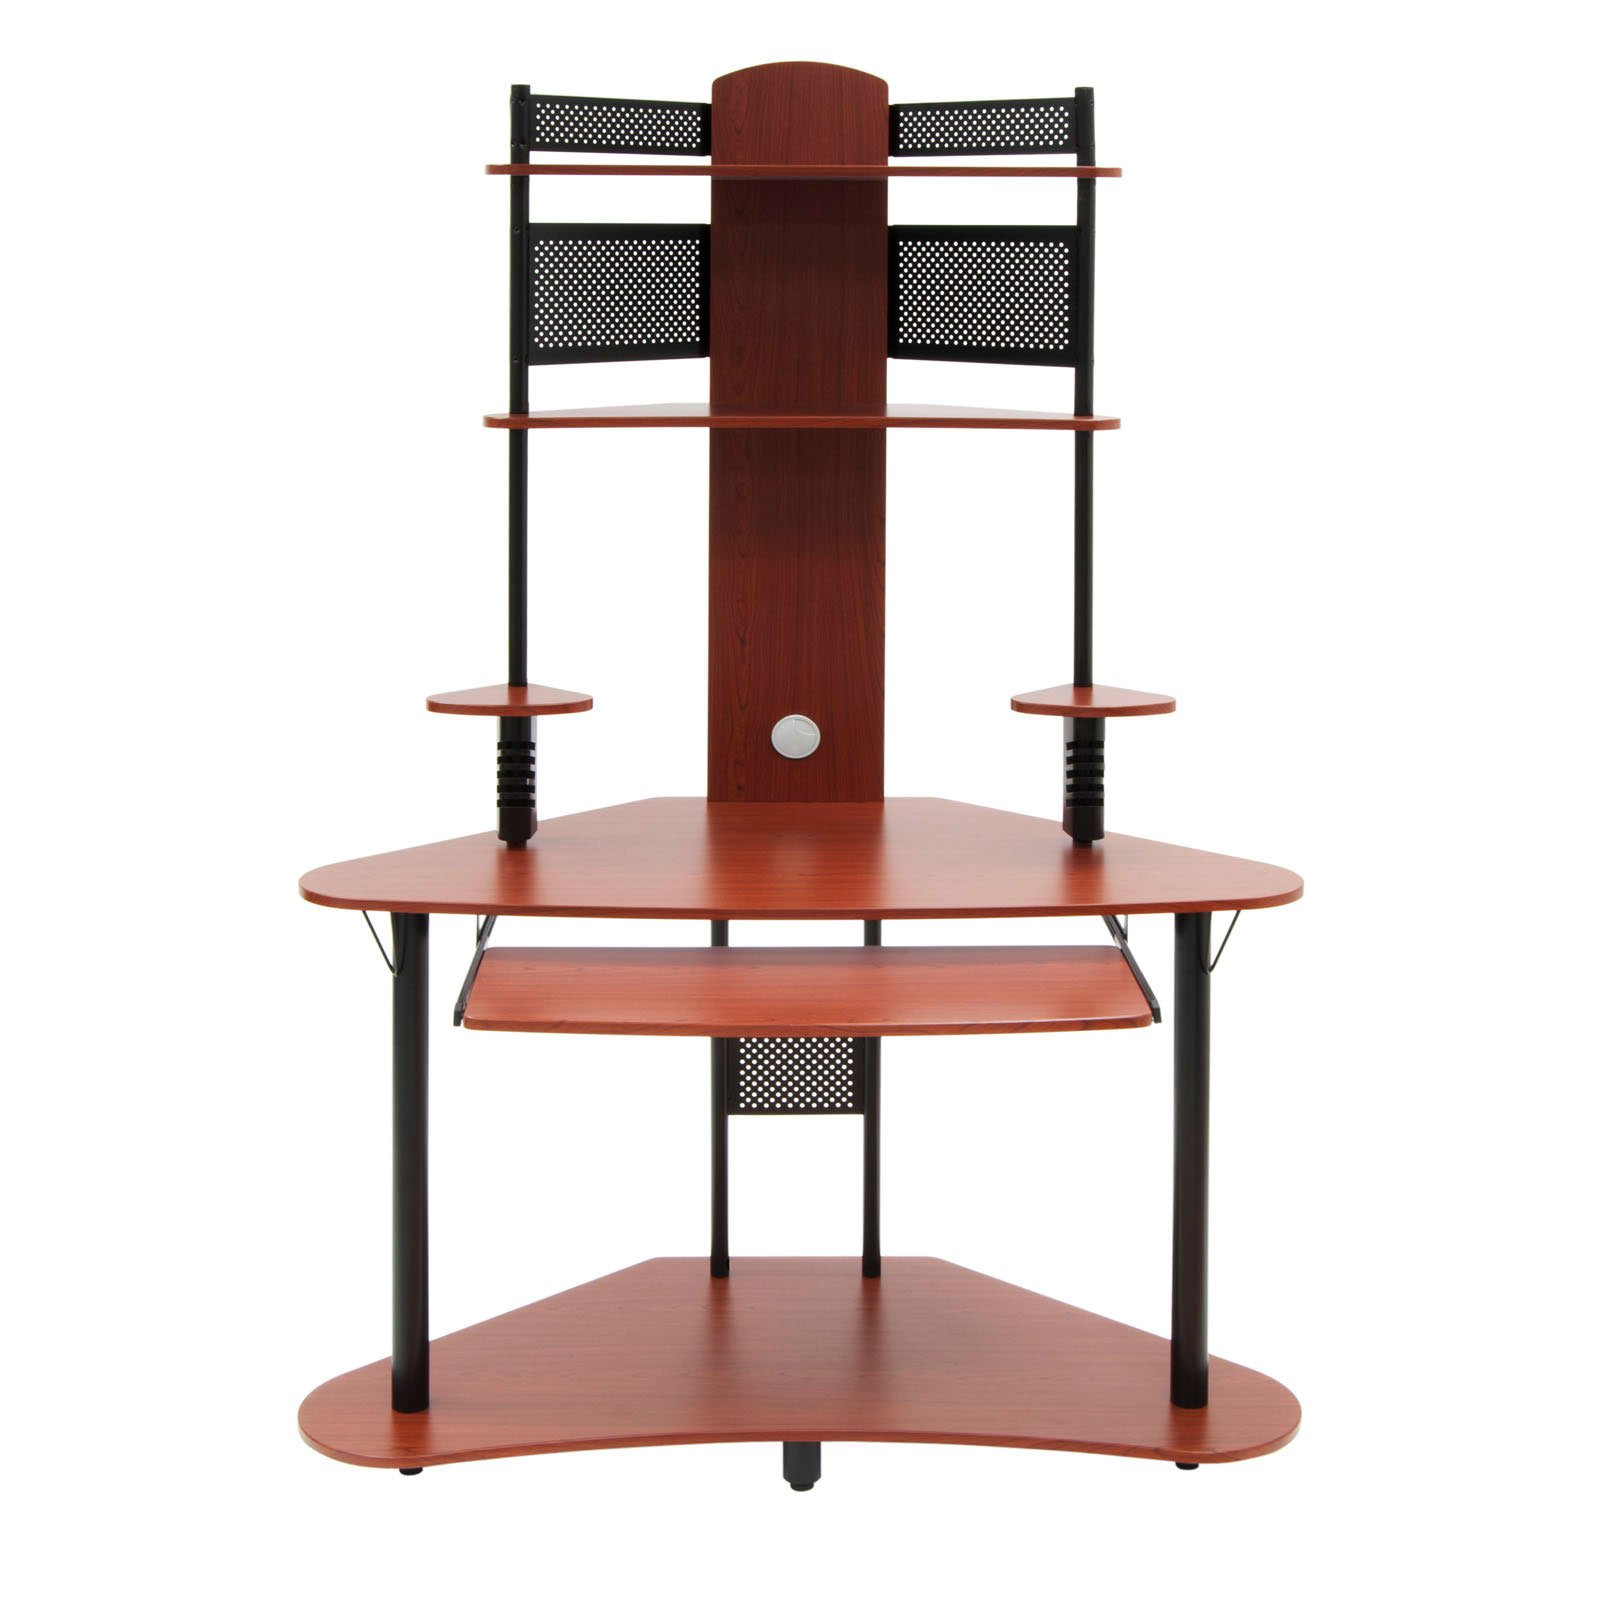 Studio Designs Home Office Furniture Arch Tower Computer